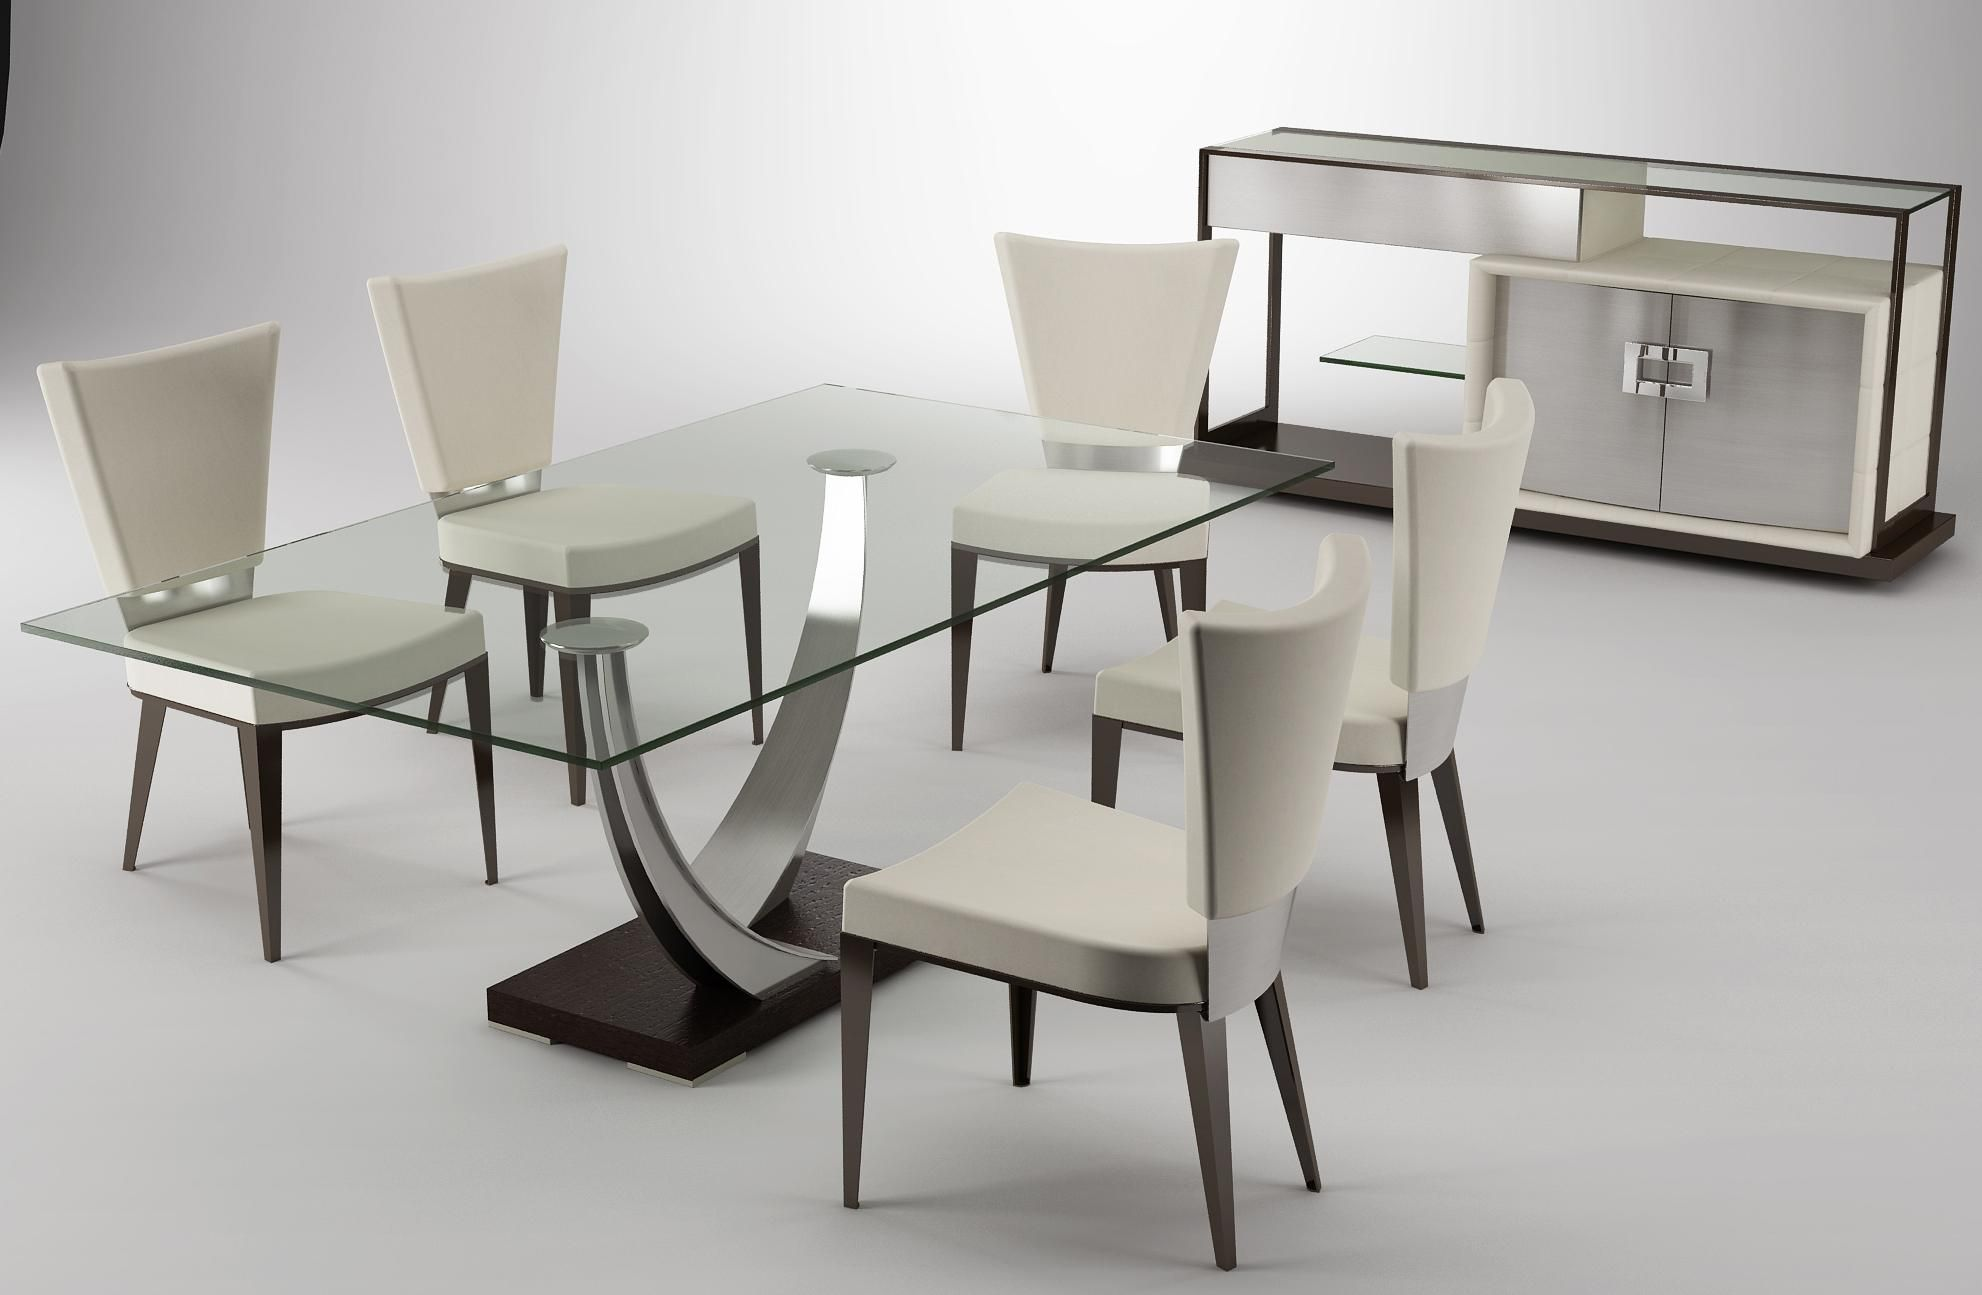 amazing modern stylish dining room table set designs elite. Black Bedroom Furniture Sets. Home Design Ideas